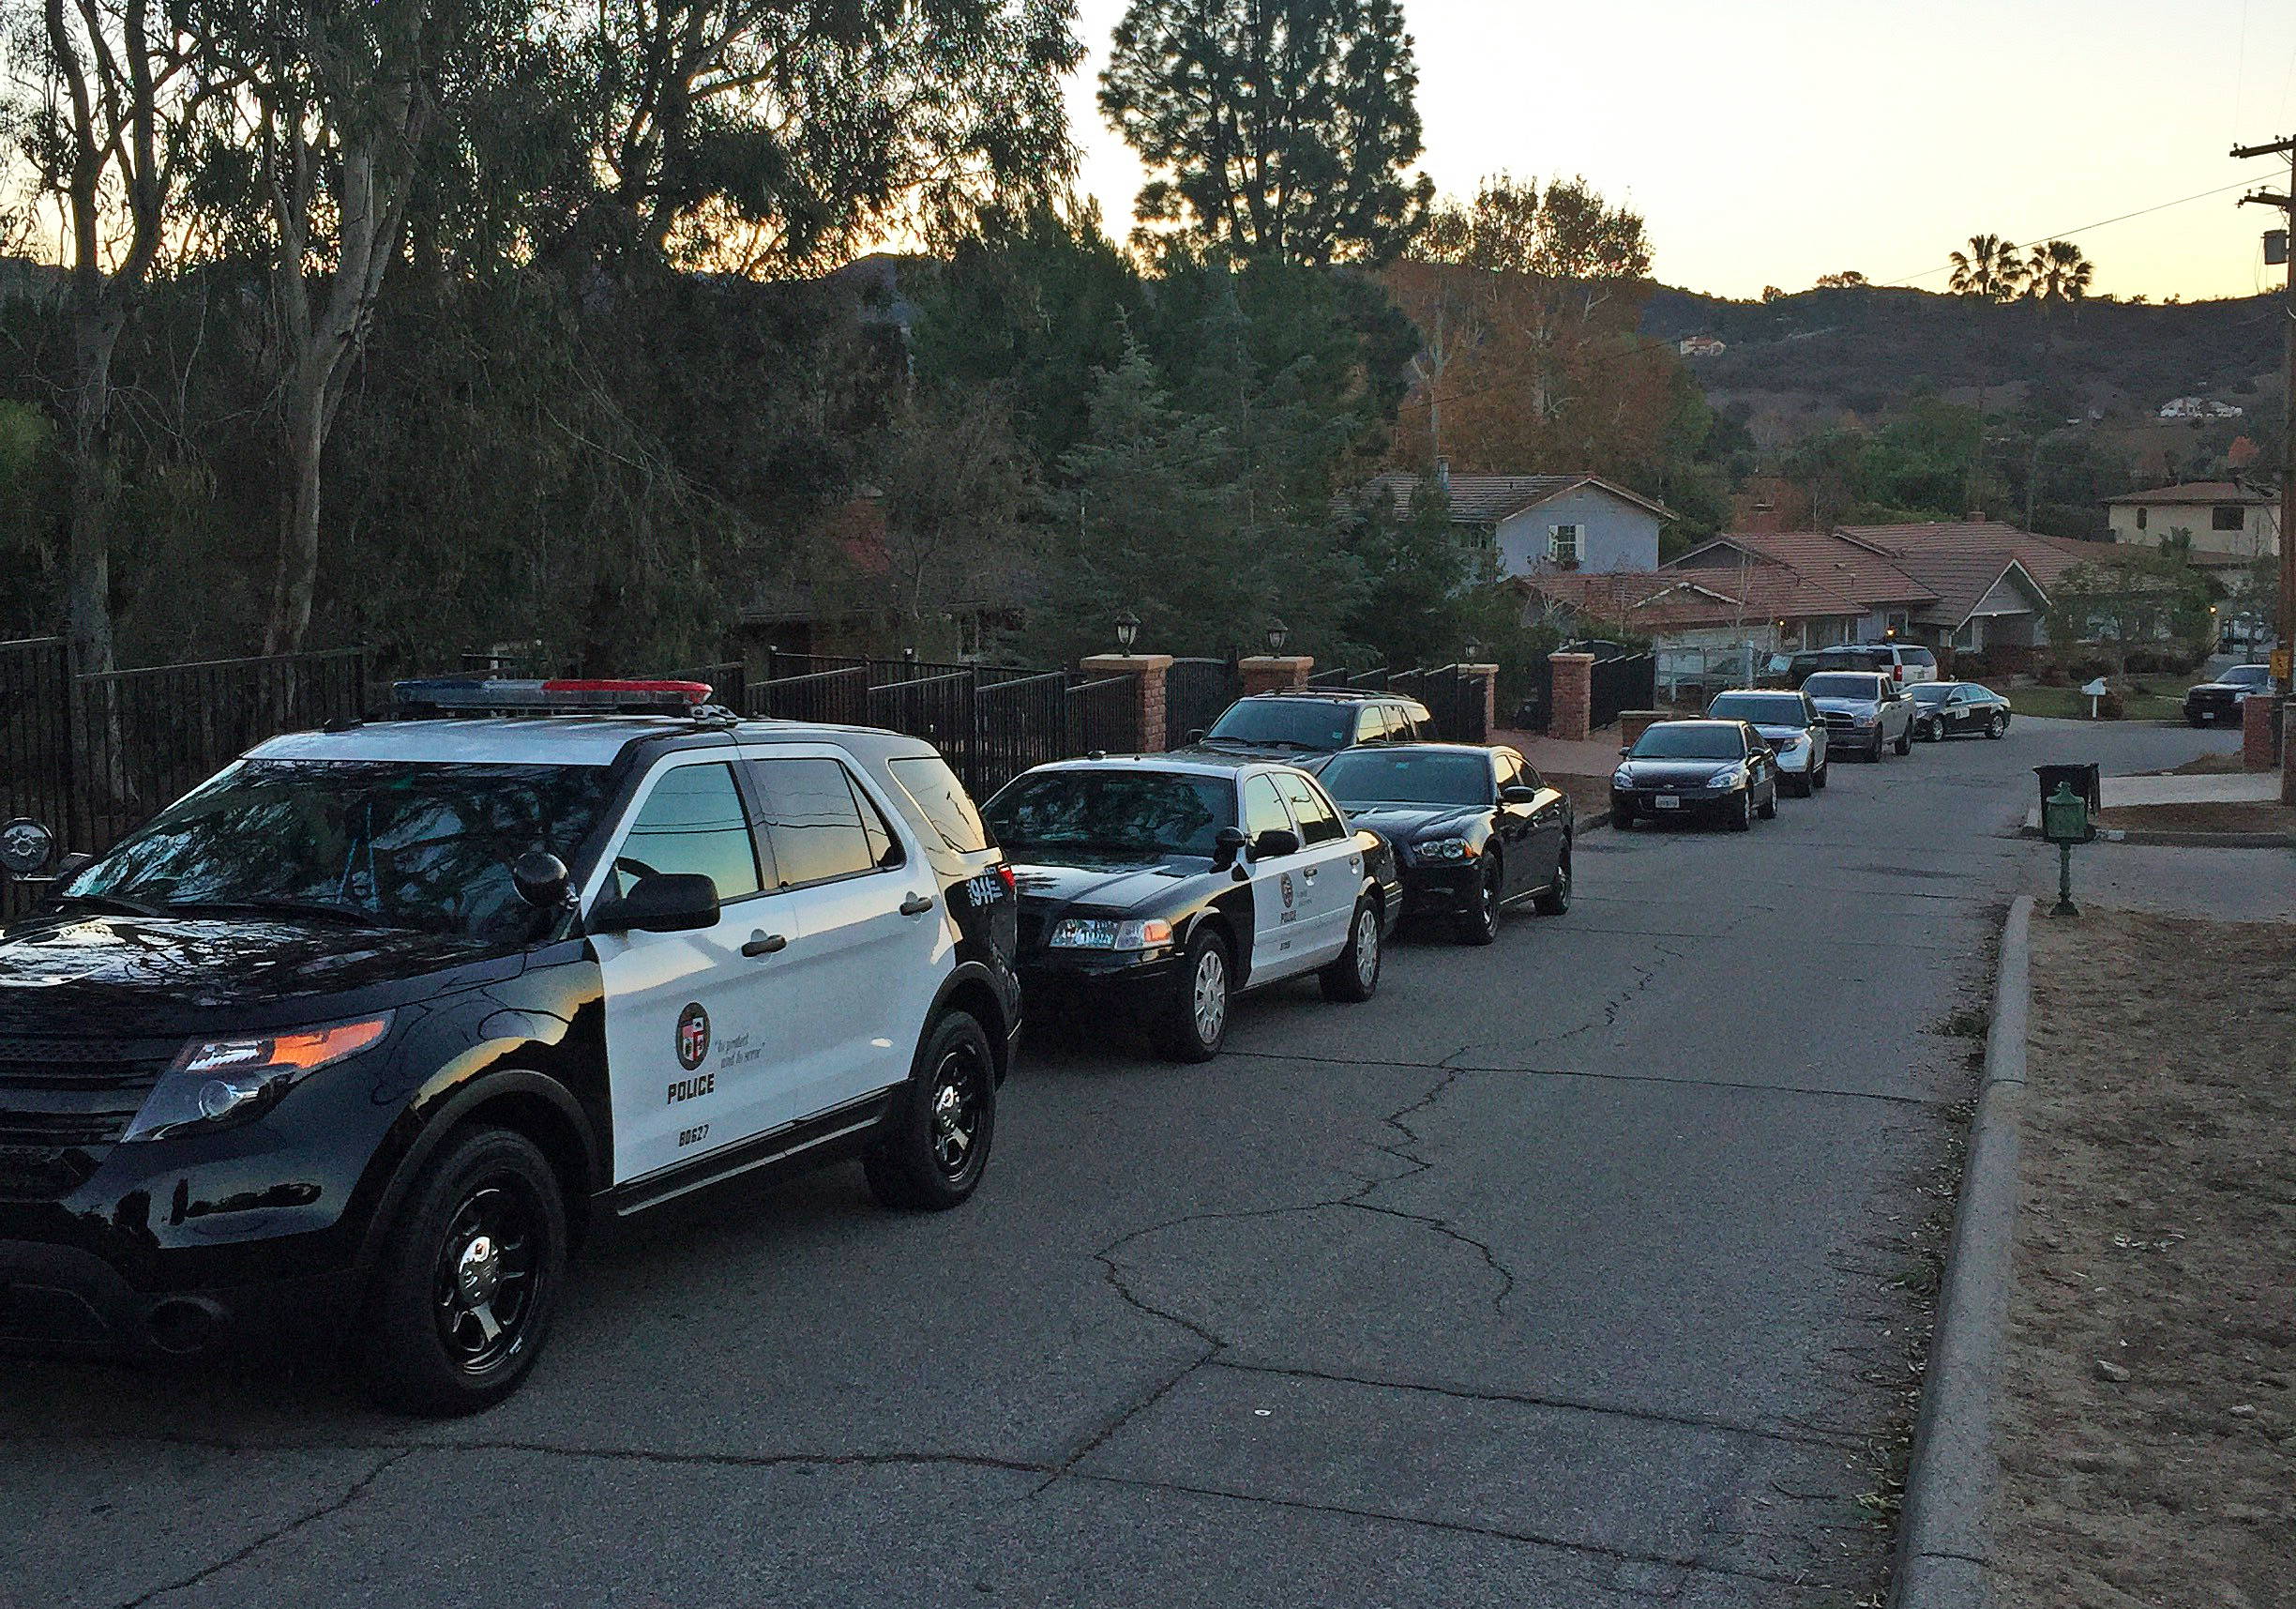 Patrol vehicles are seen during an LAPD Internet Crimes Against Children task force search of a home in Sunland on Dec. 29, 2015, in a photo provided to KTLA by a neighbor.